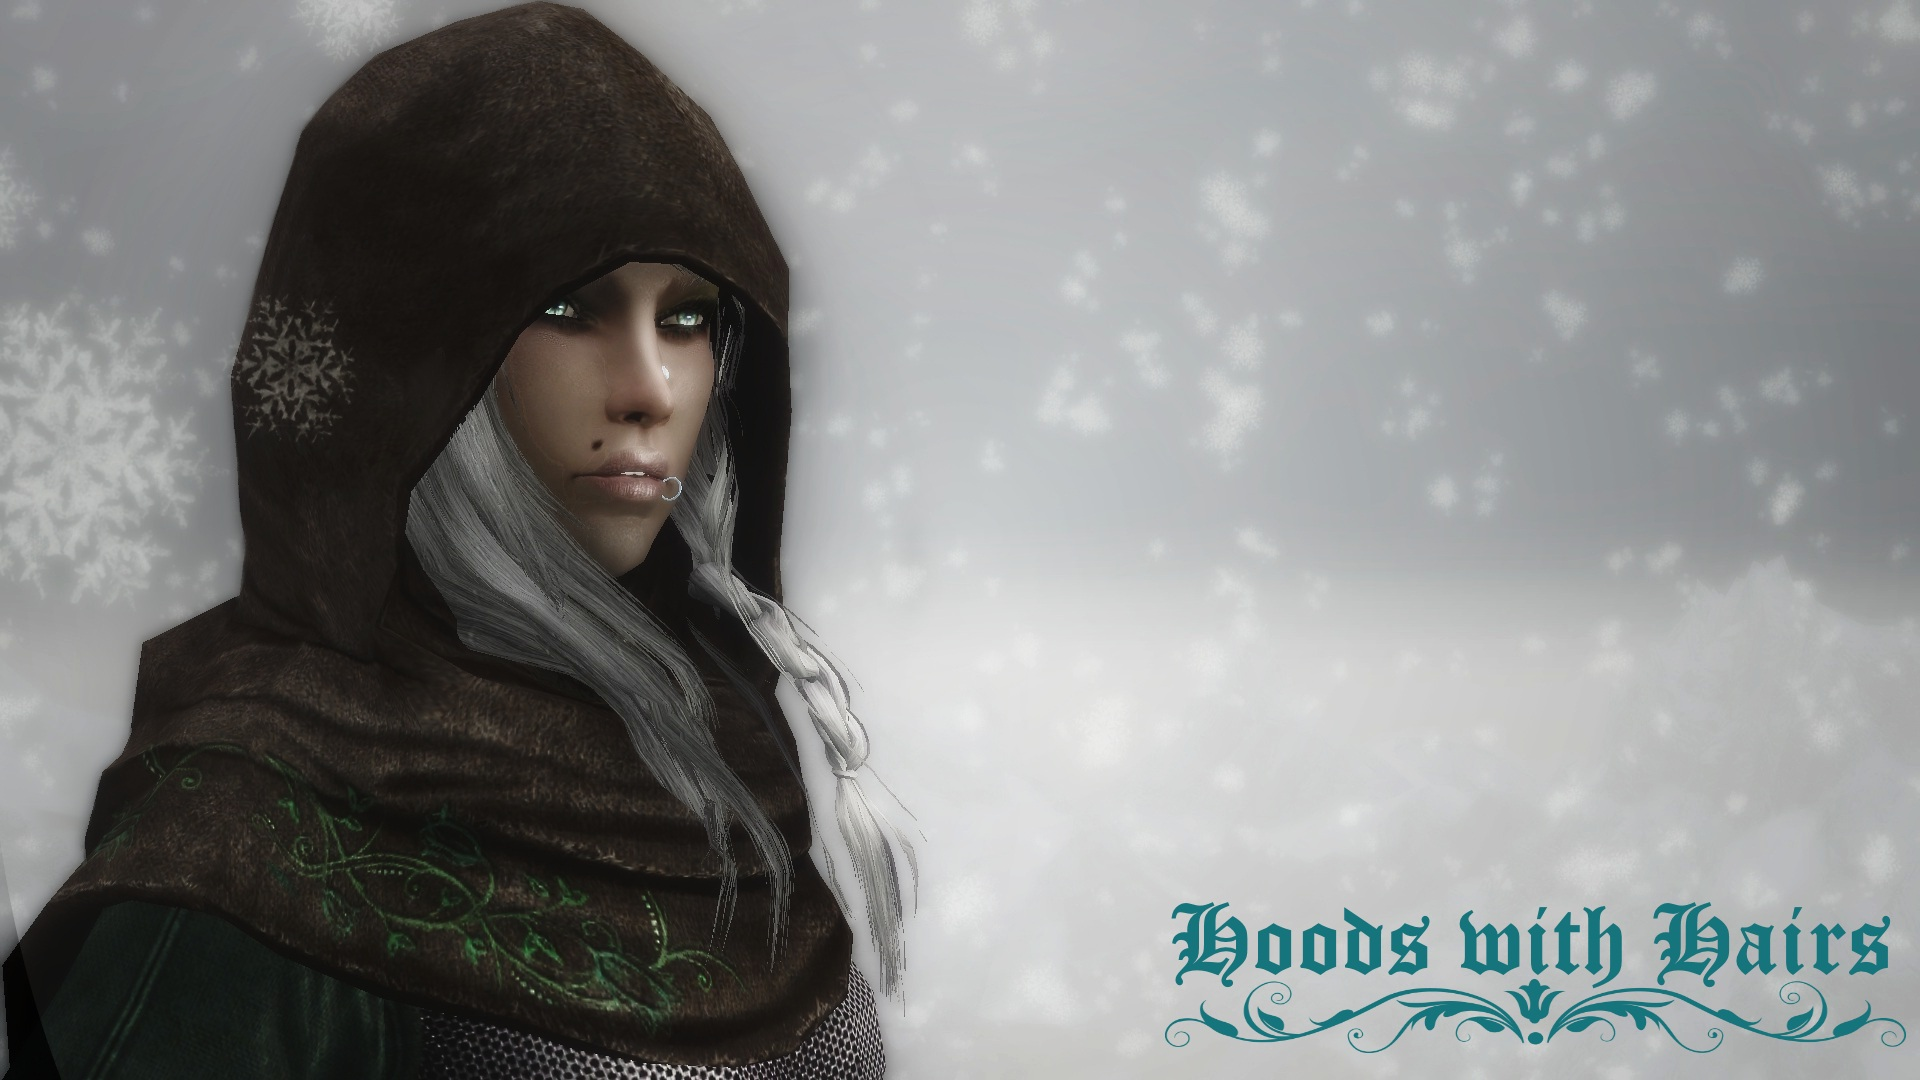 Hoods with Hairs - Crafting (1).jpg